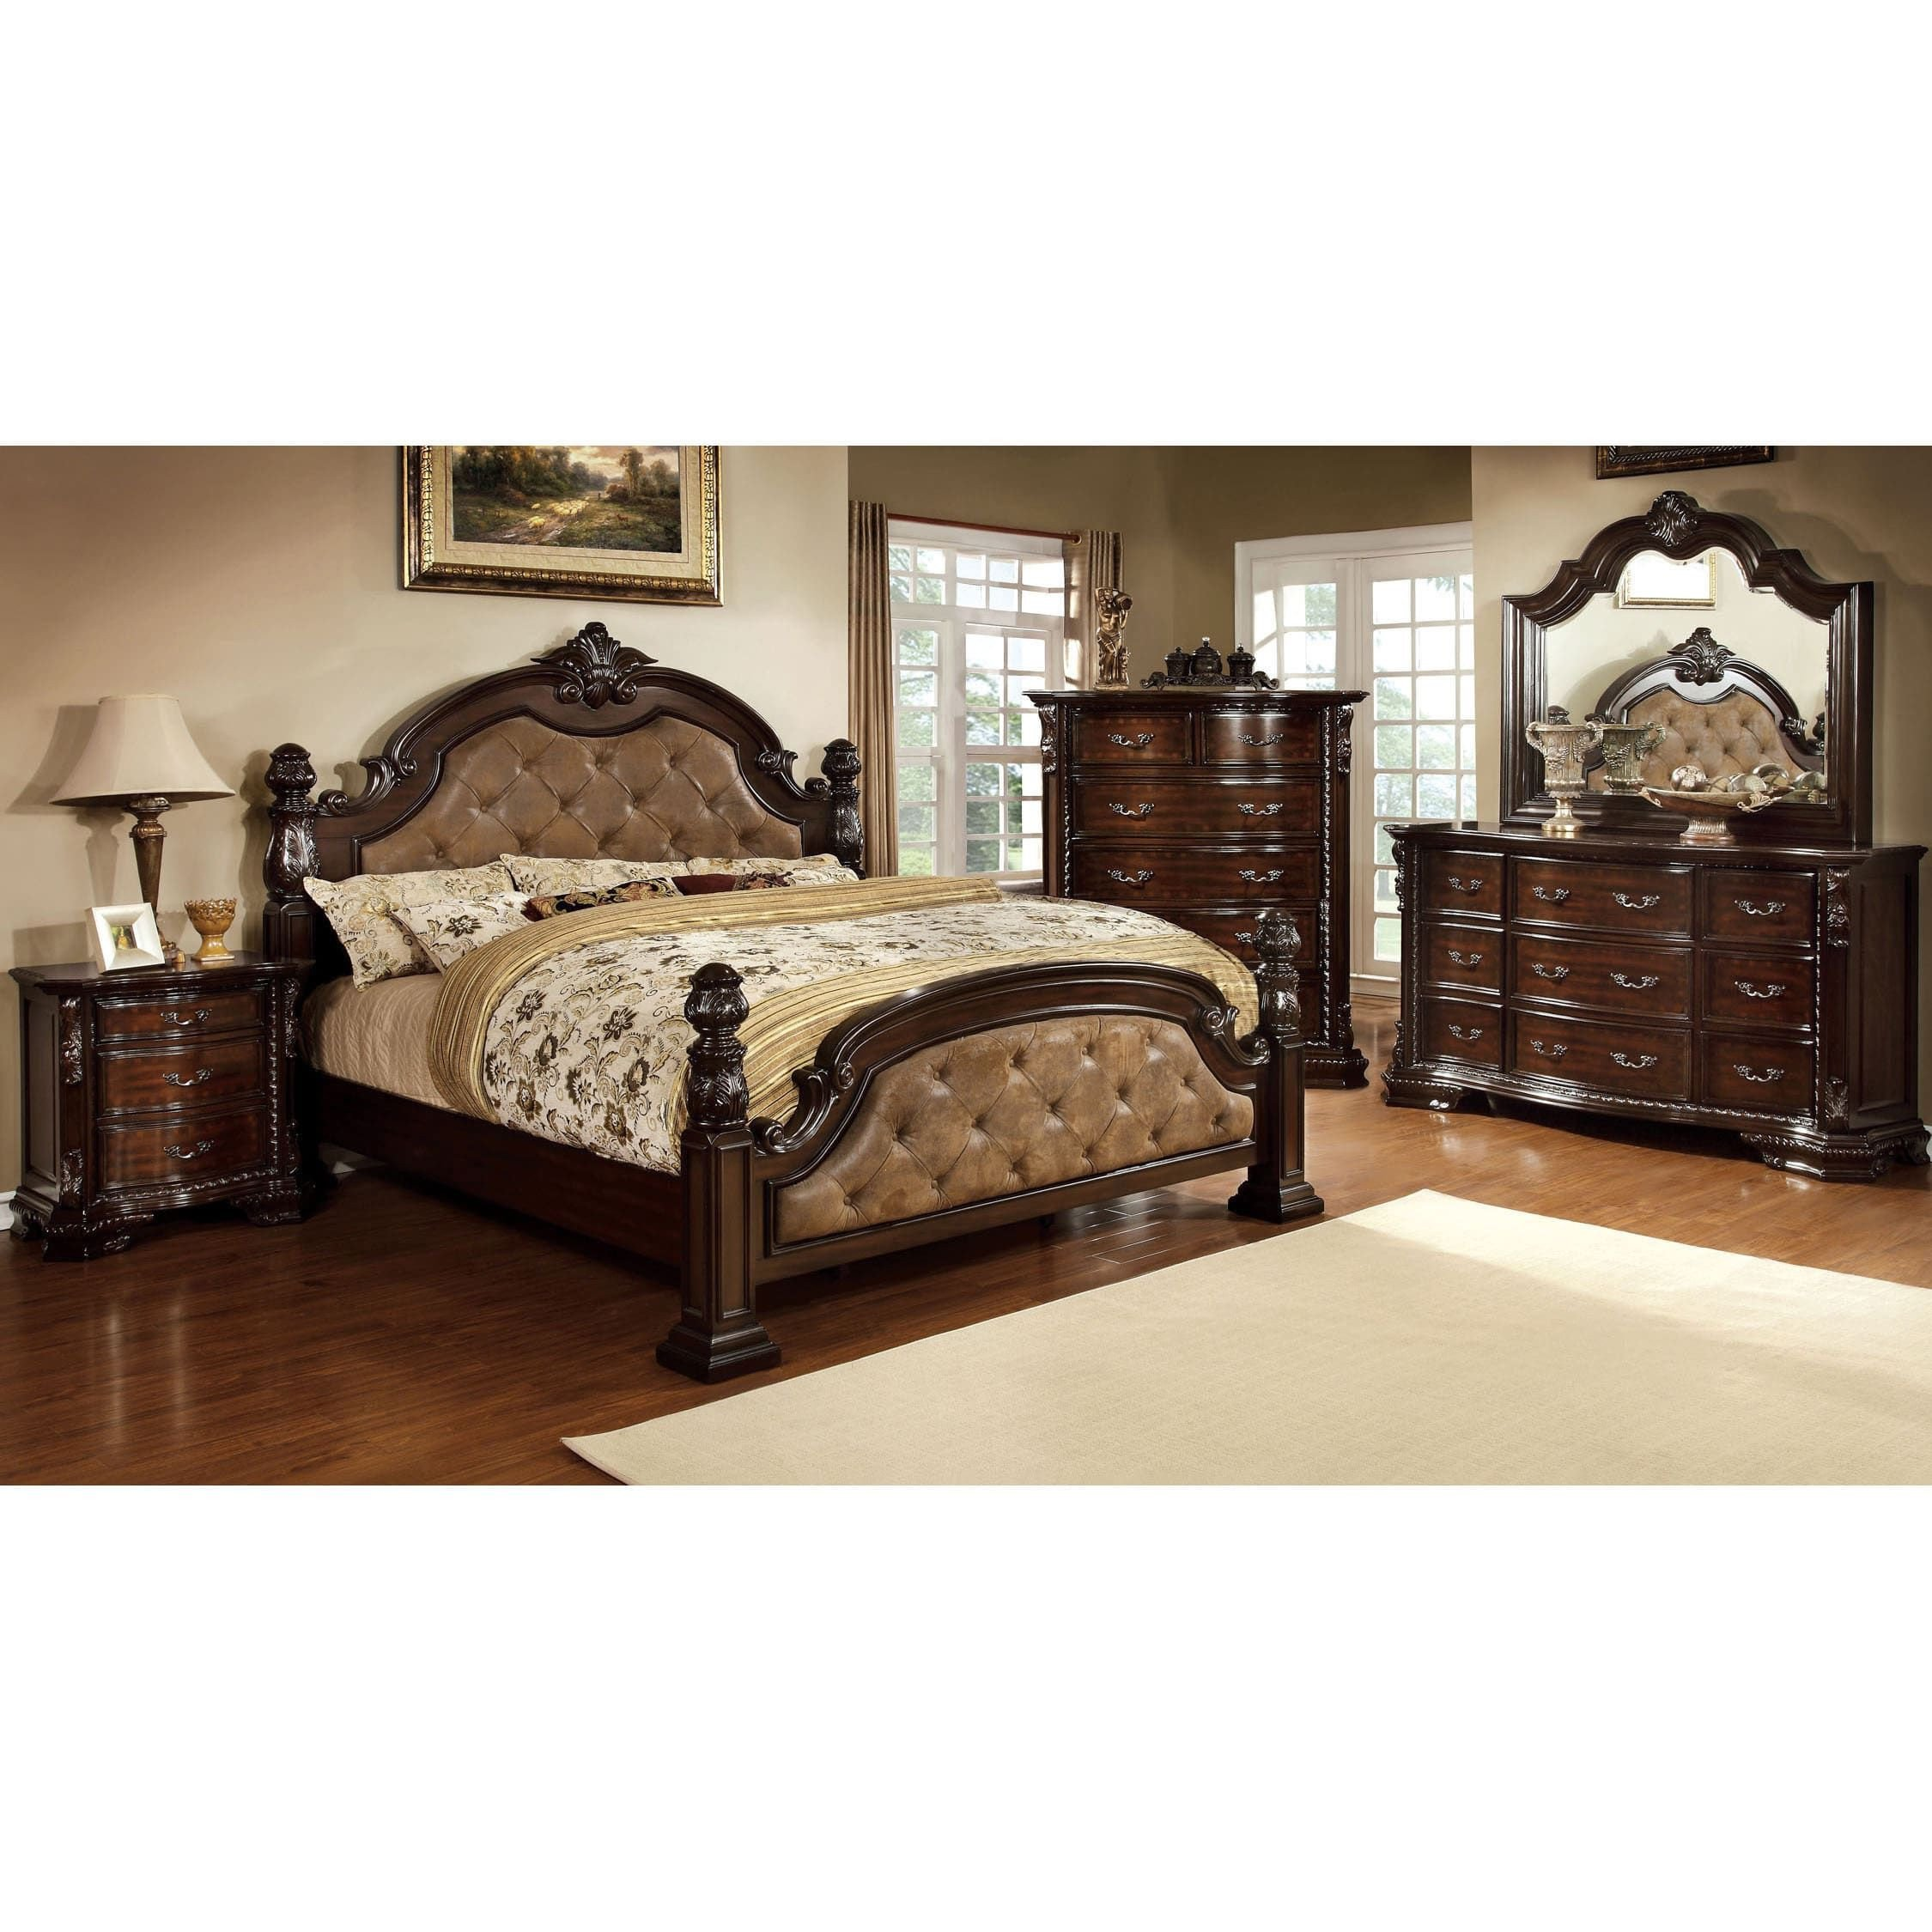 California King Size Bedroom Furniture Set New Kassania Traditional 4 Piece Bedroom Set by Foa California